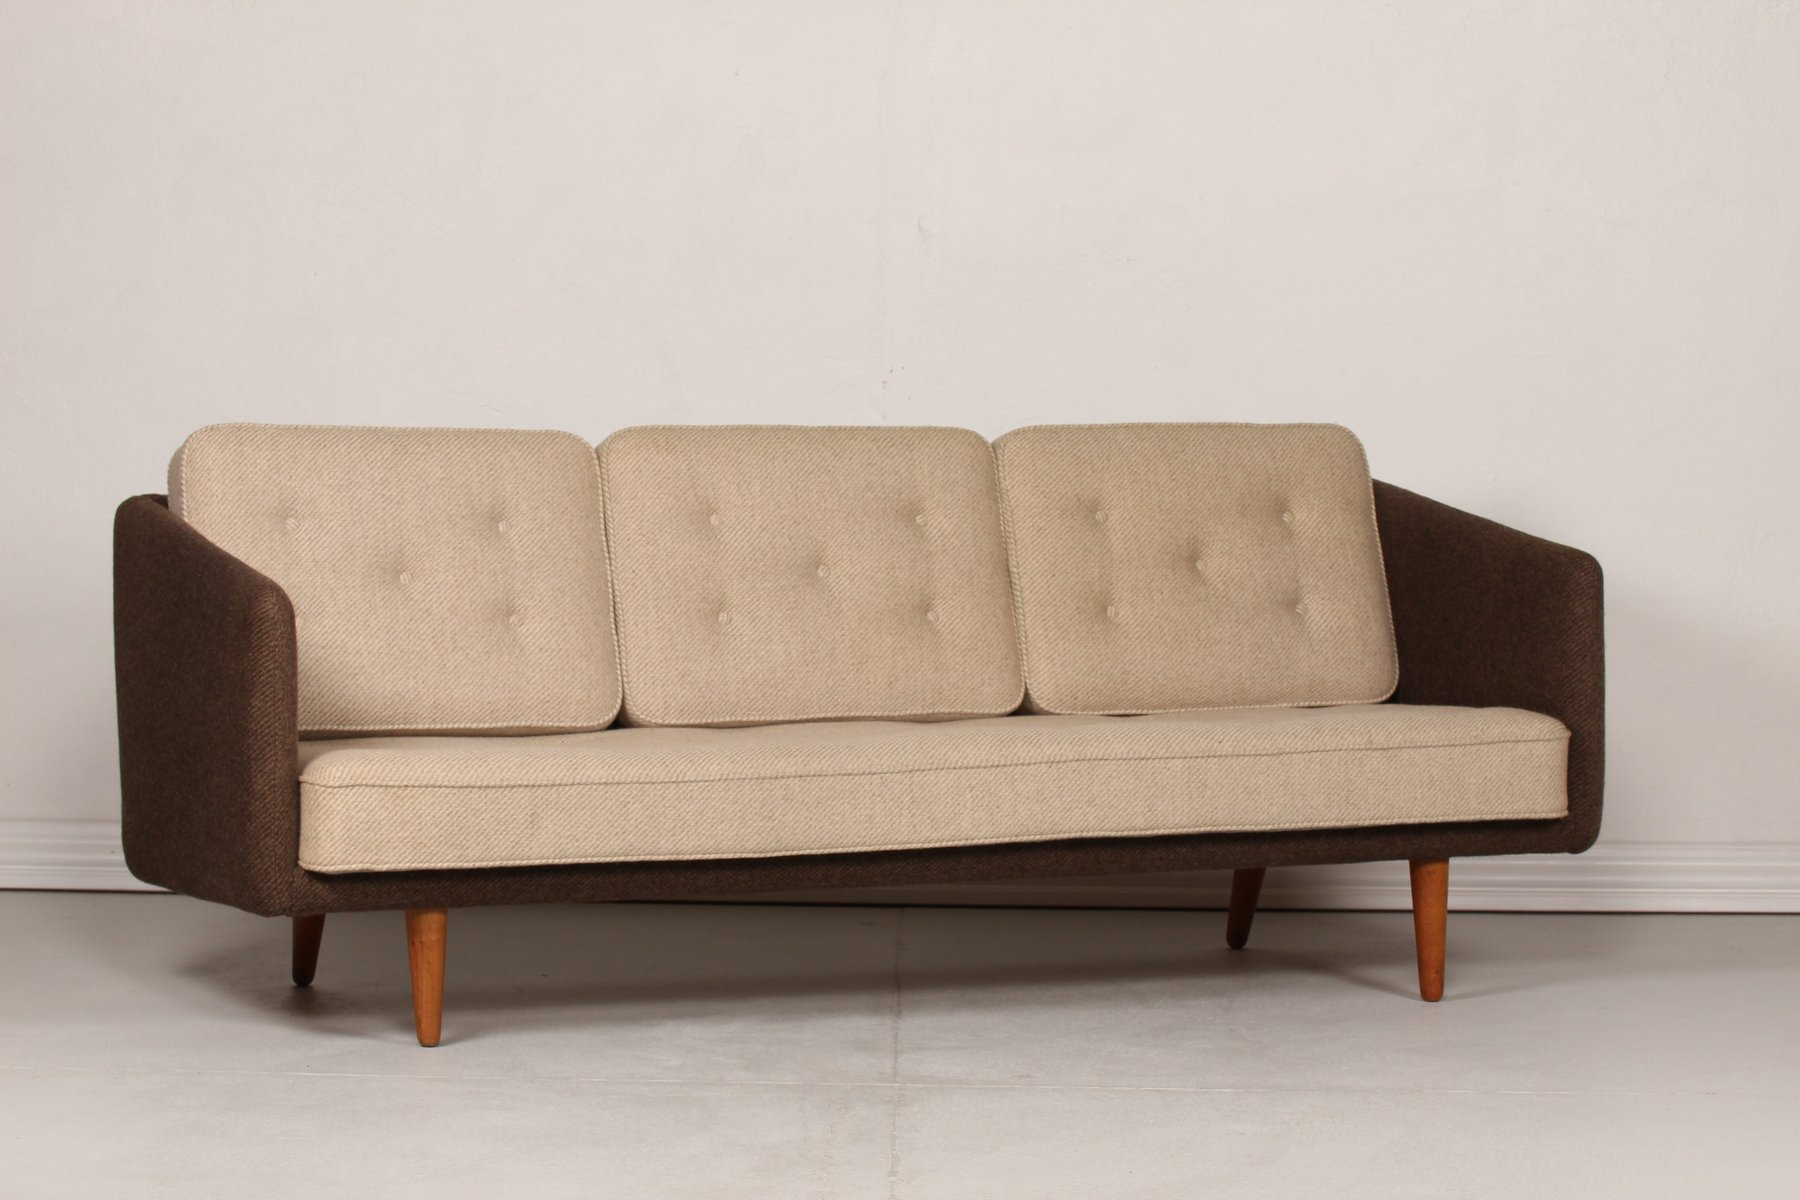 Model no 1 sofa by b rge mogensen for fredericia for 1960s furniture designers